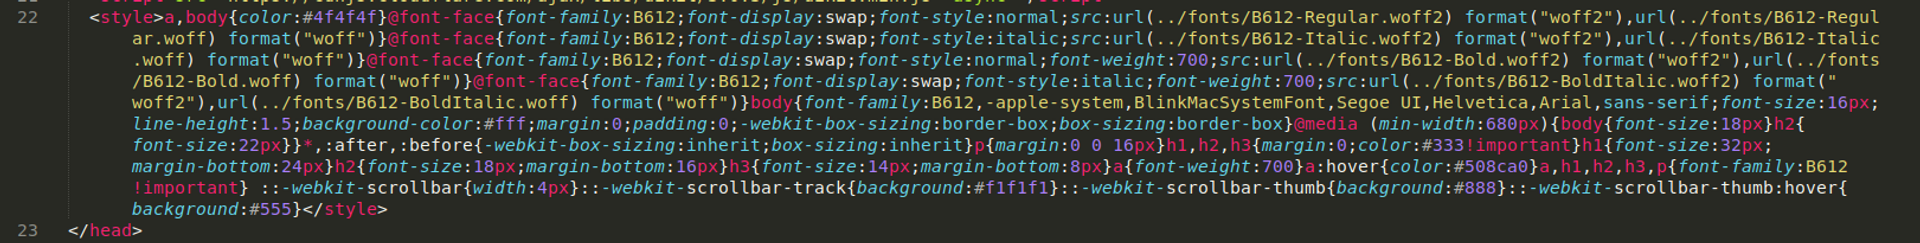 Minified CSS in head